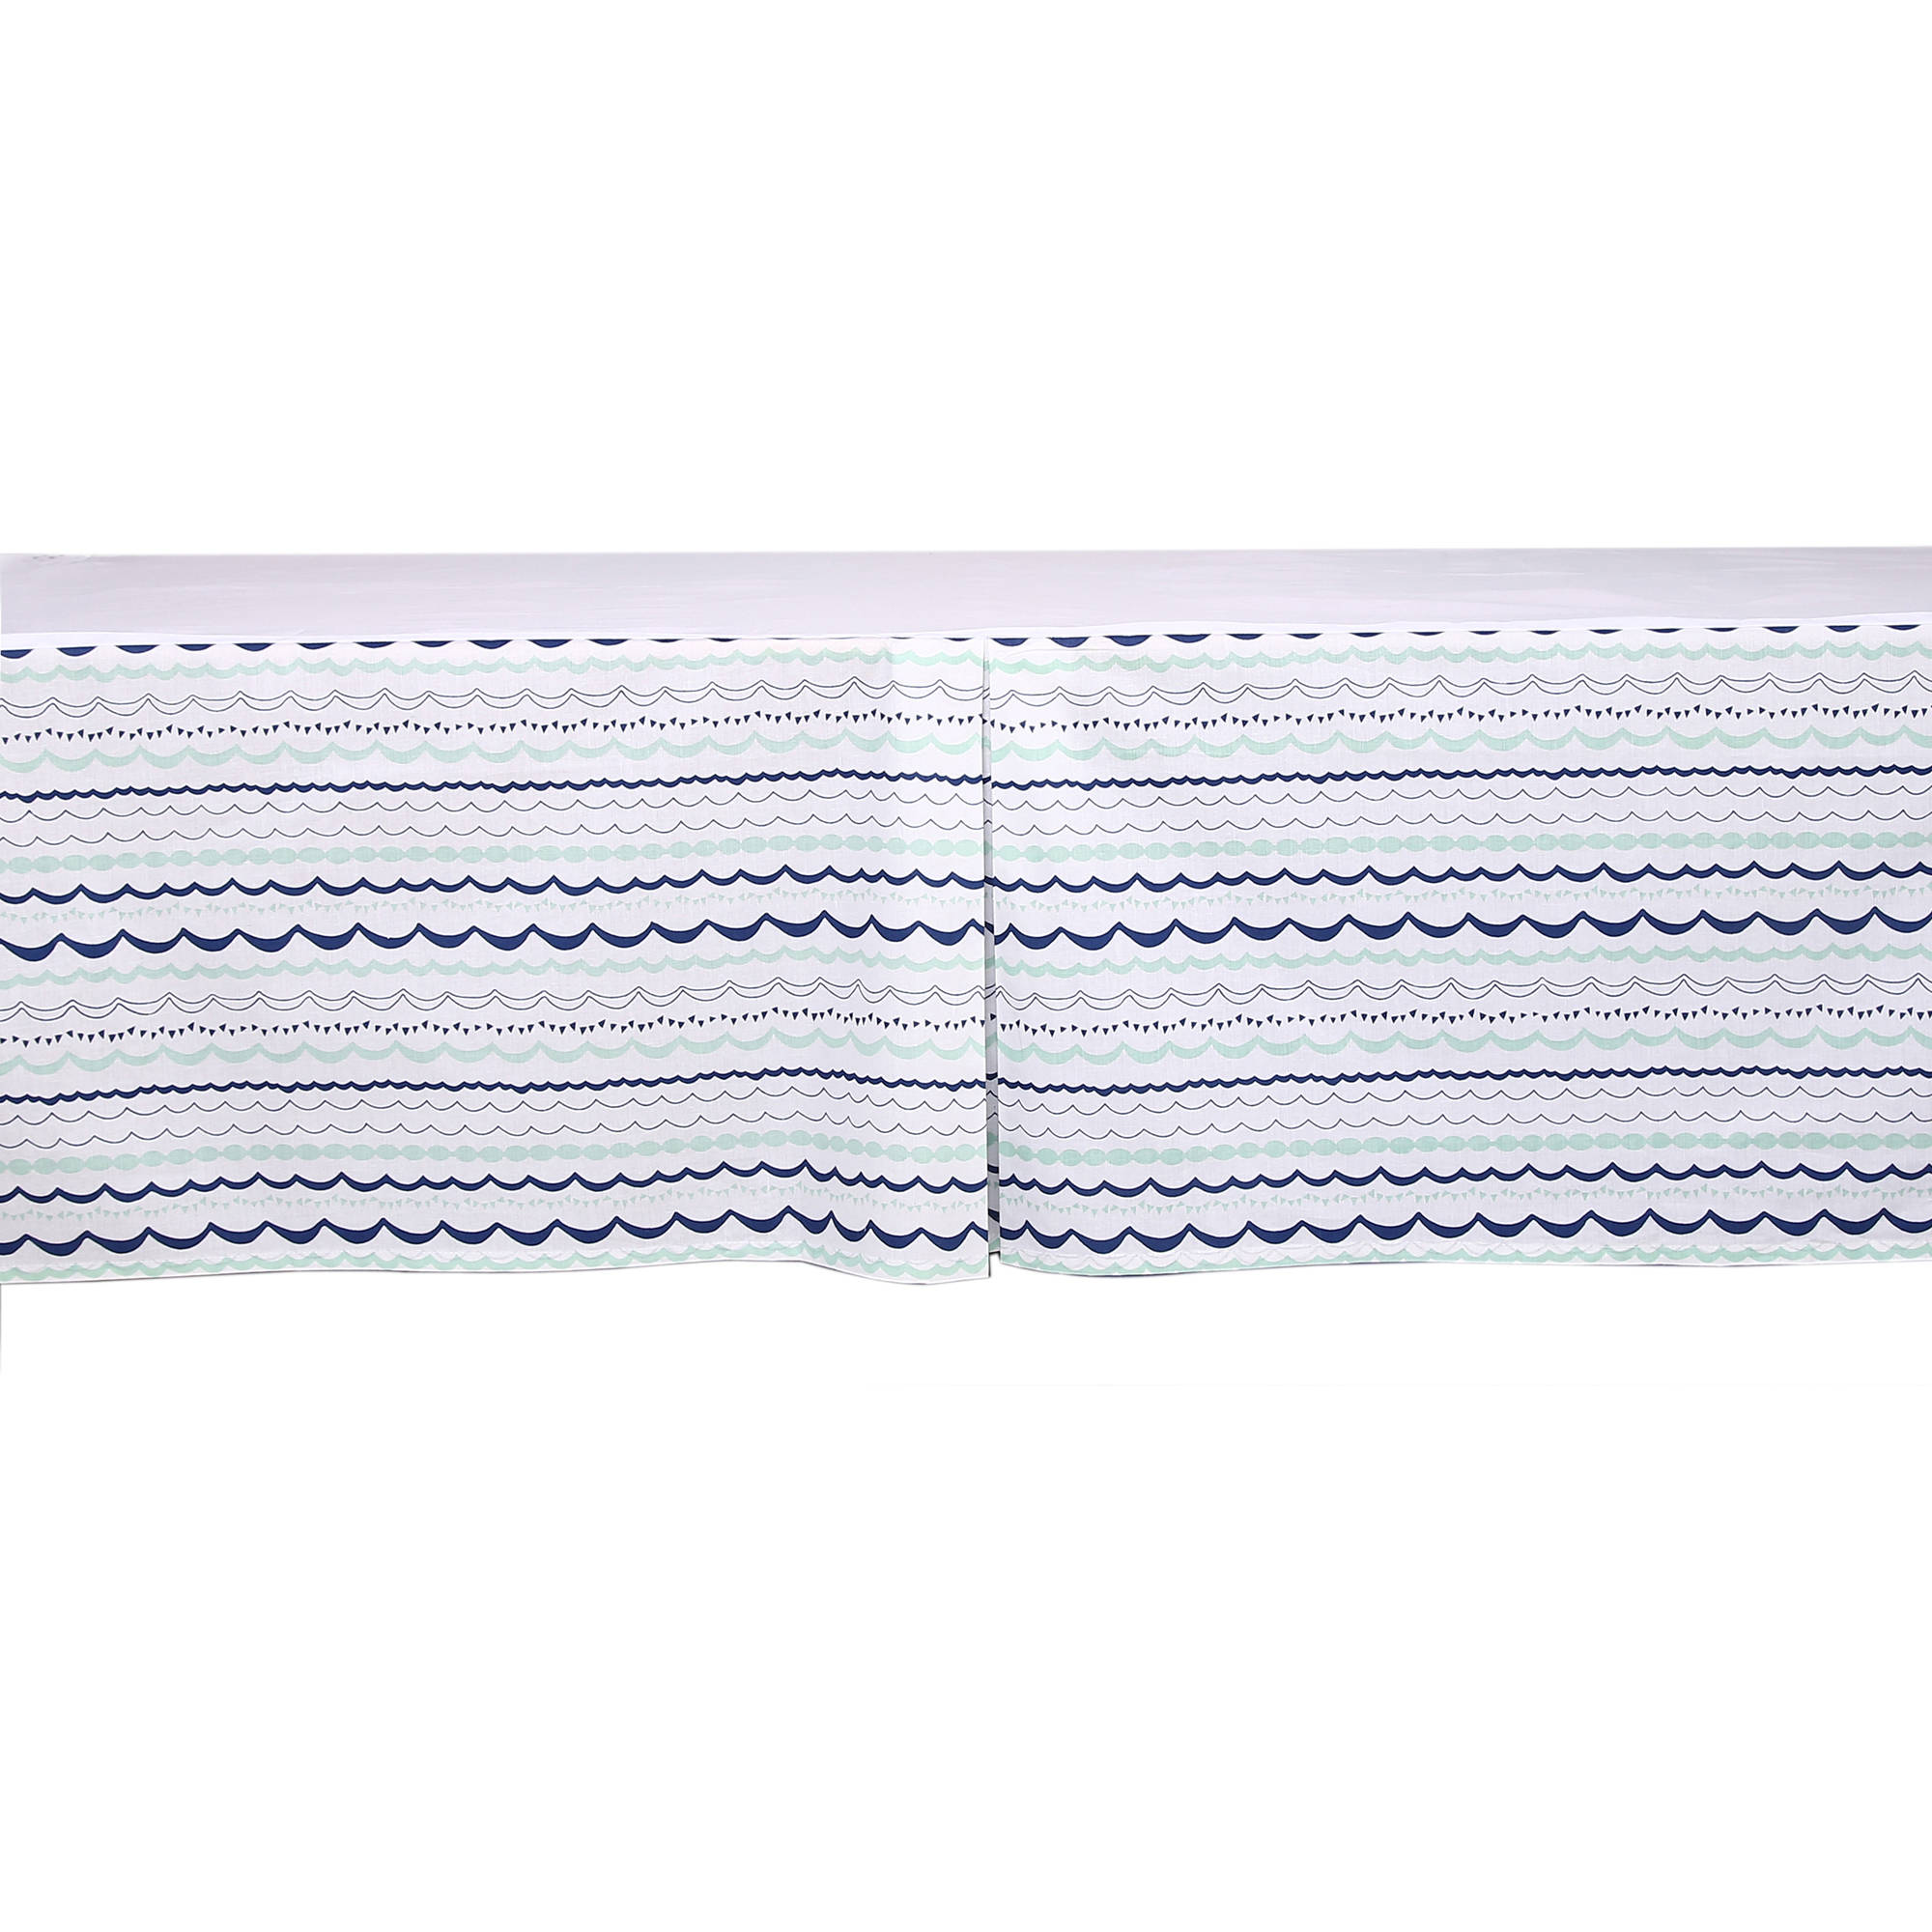 Bacati - Noah Tribal Garland Mint/Navy Tailored with 100% Cotton Percale 13 inch drop Crib/Toddler Bed Skirt